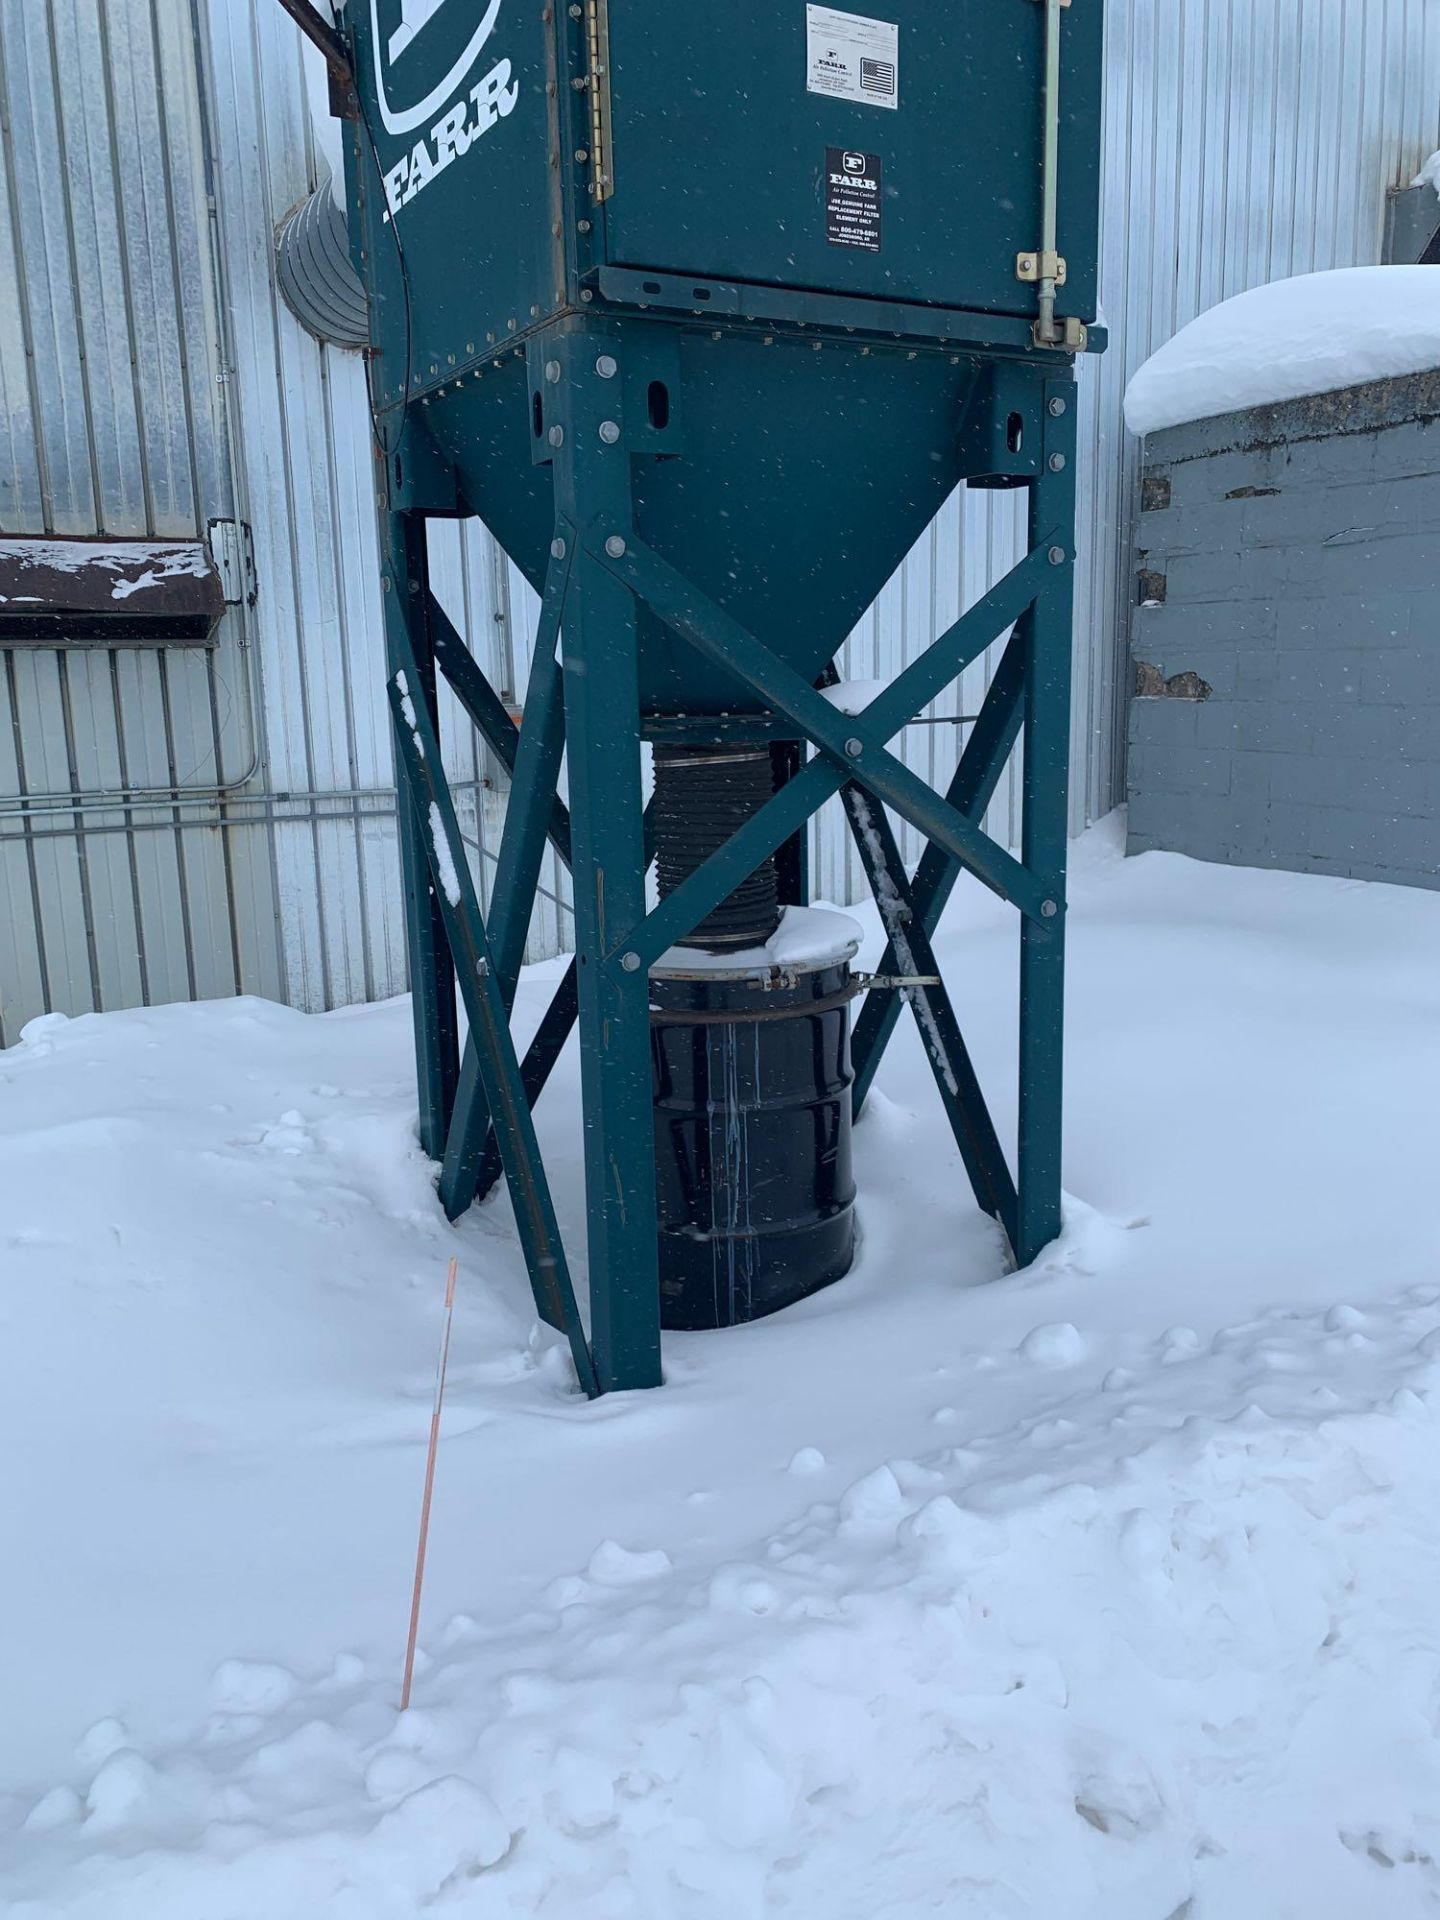 Farr Dust Collector Model GS-4 Serial Number: 836598 Part Number: 212834FAN - Image 4 of 10